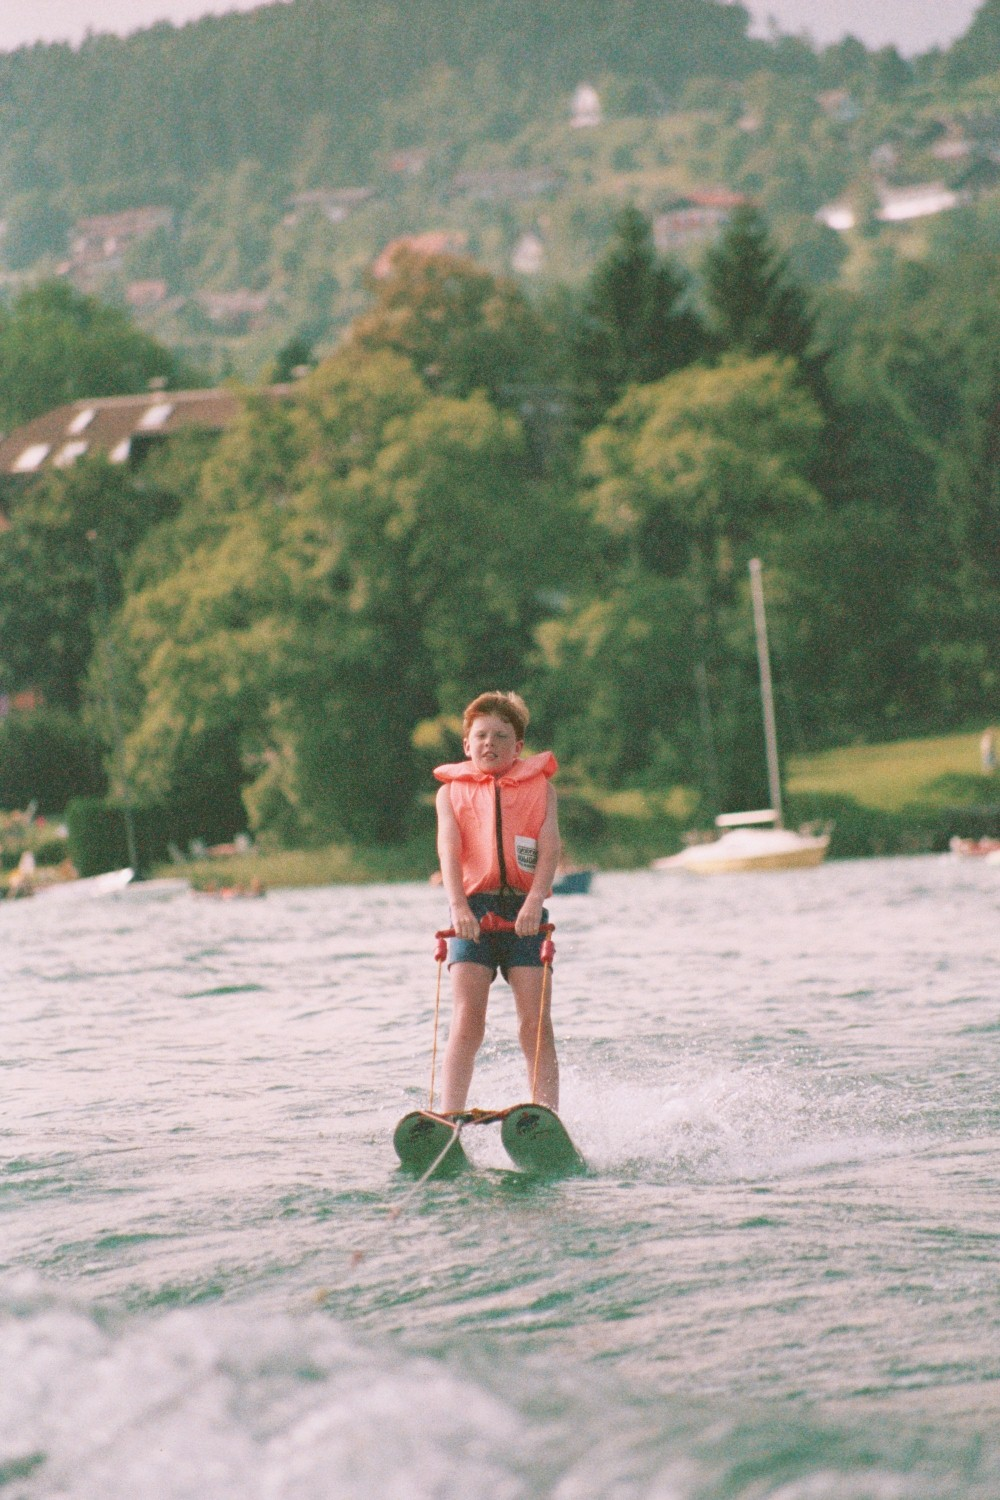 Ed Shearer Waterskiing on the Worthersee in Austria